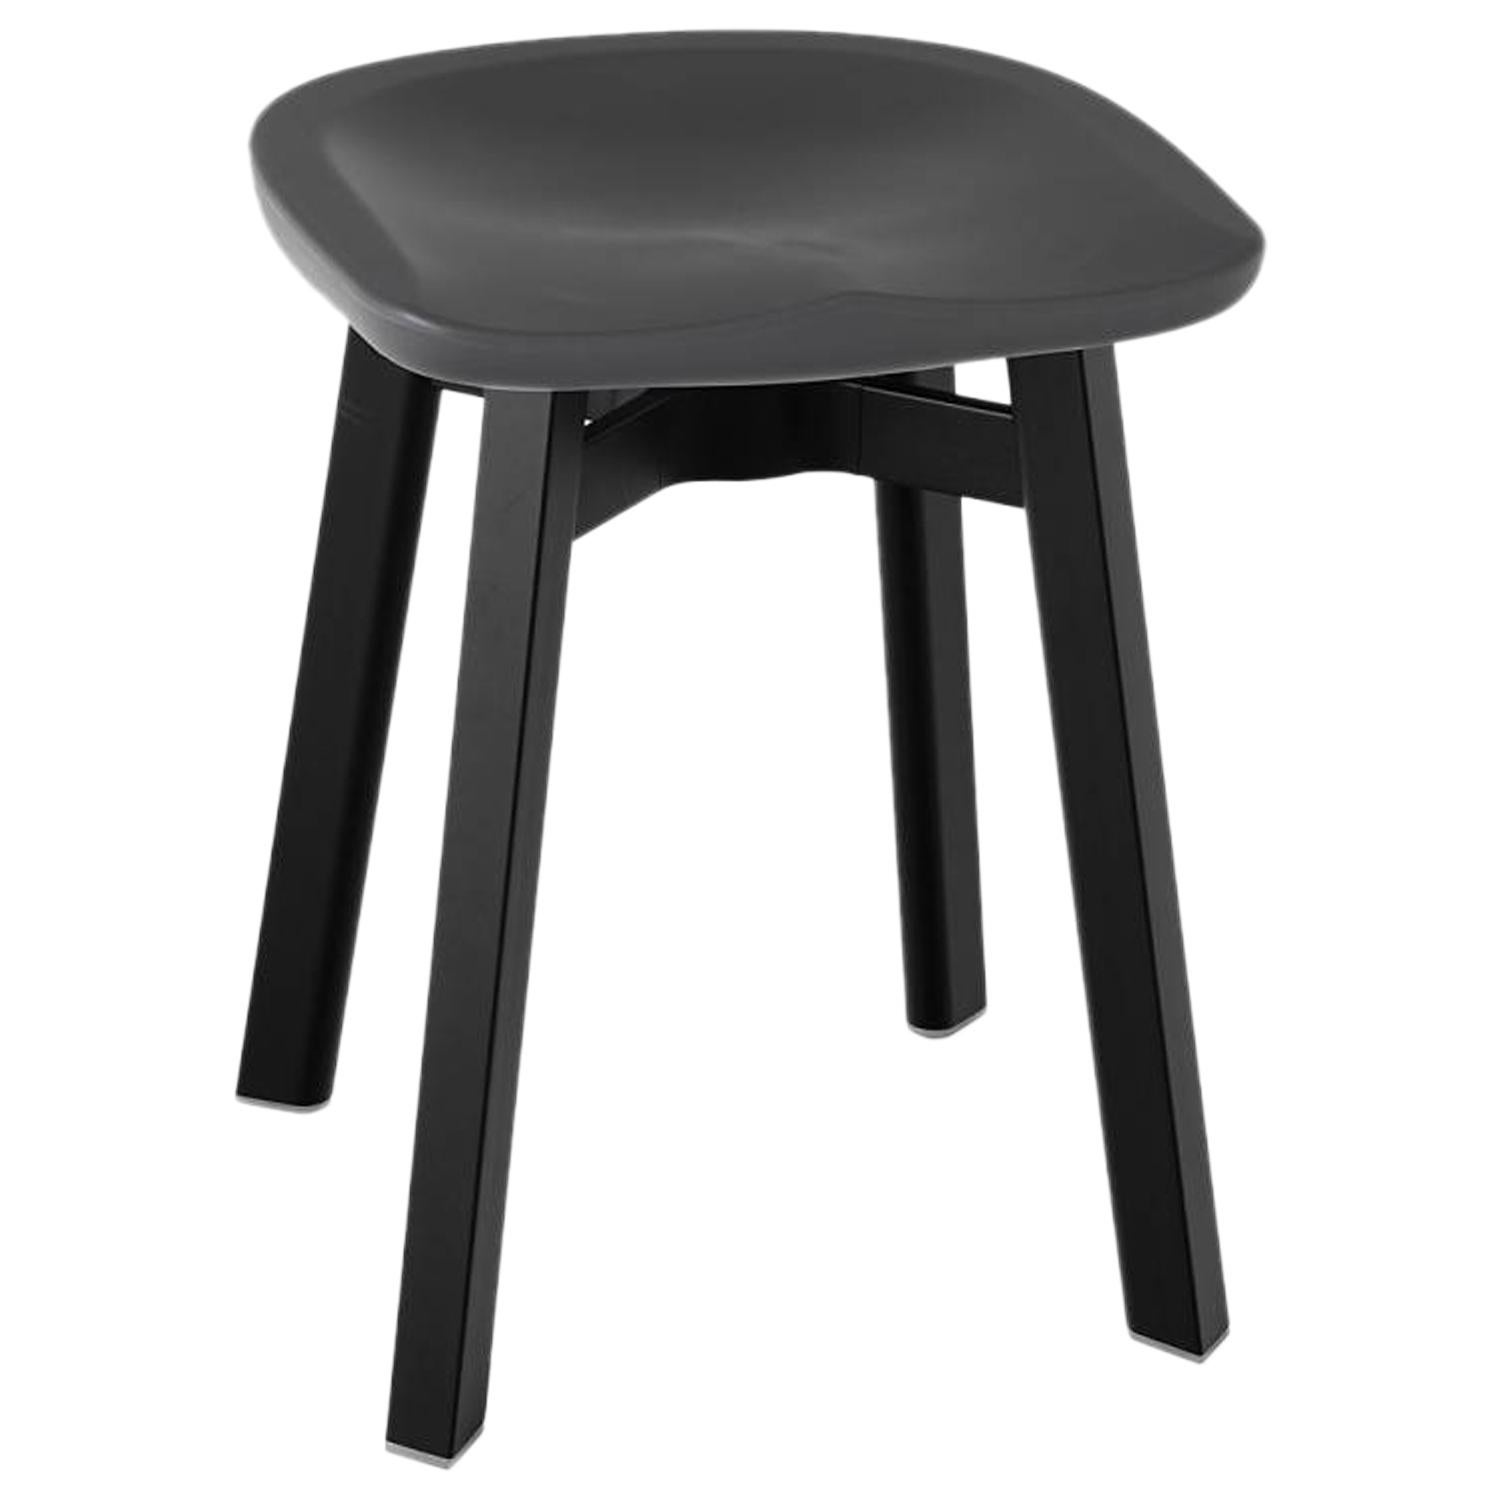 Small Stool Chair Emeco Su Small Stool In Black Aluminum With Charcoal Seat By Nendo